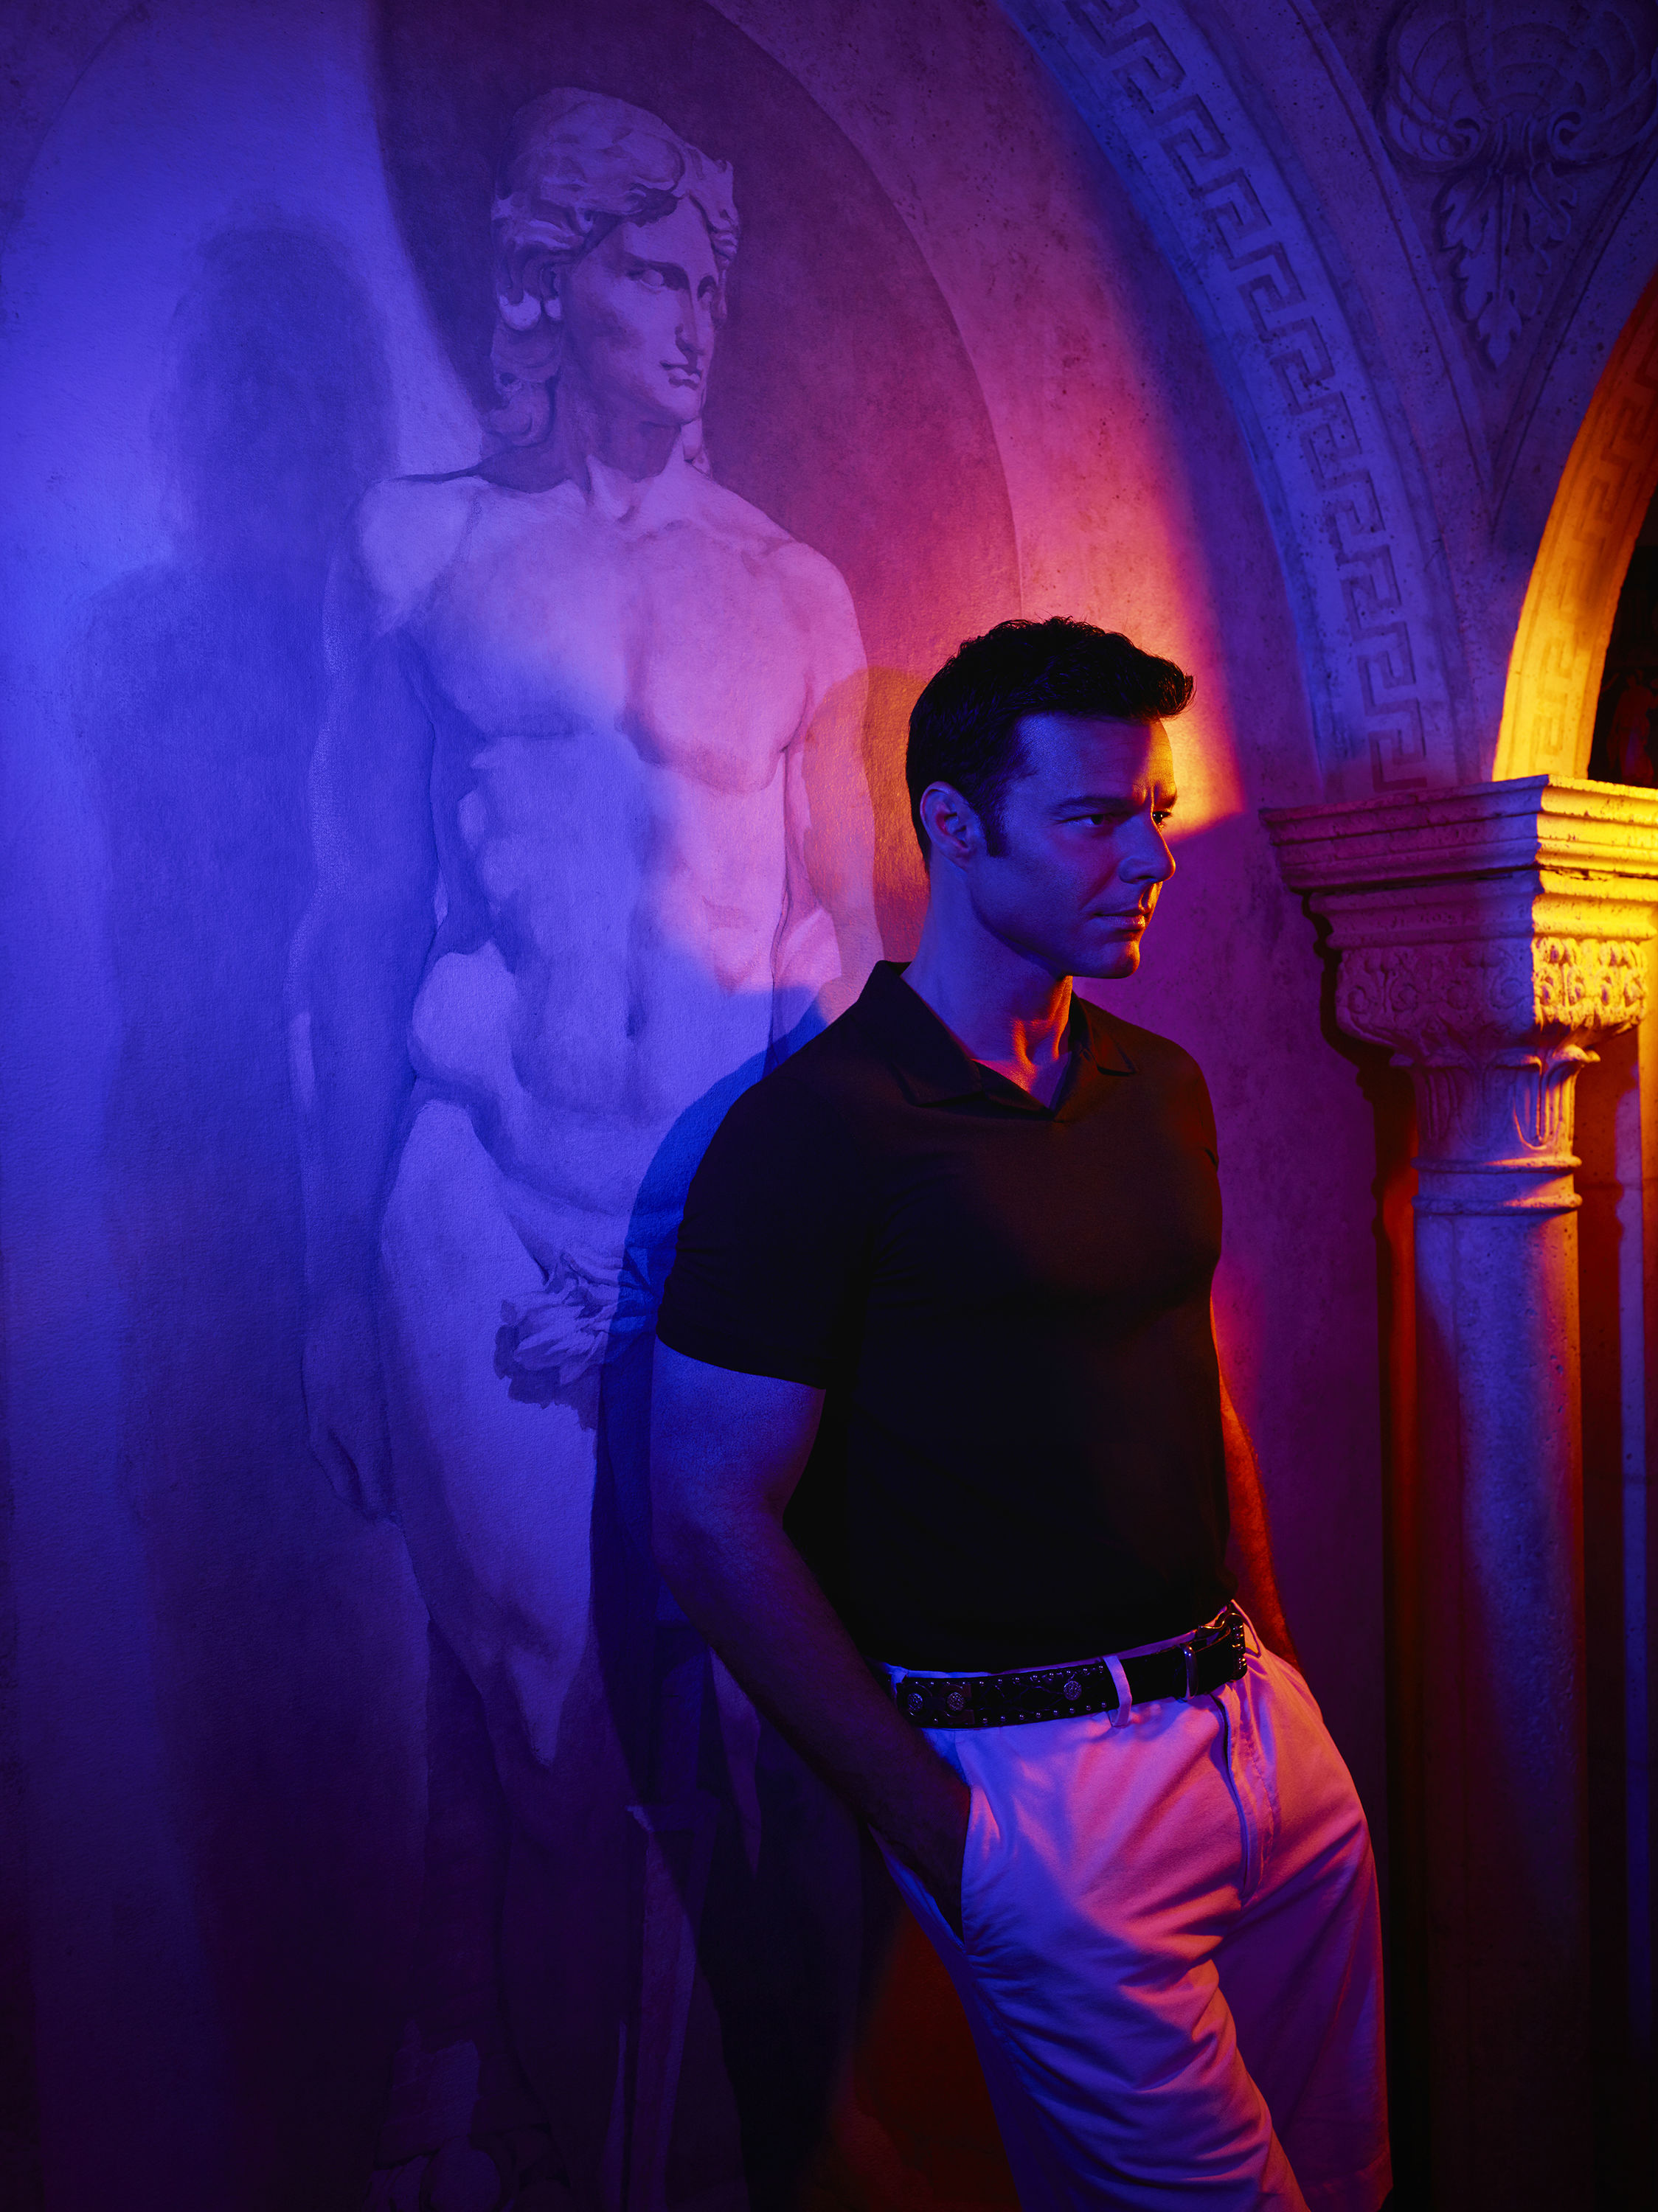 The Assassination of Gianni Versace: American Crime Story Addresses Versaces HIV Status The Assassination of Gianni Versace: American Crime Story Addresses Versaces HIV Status new pics